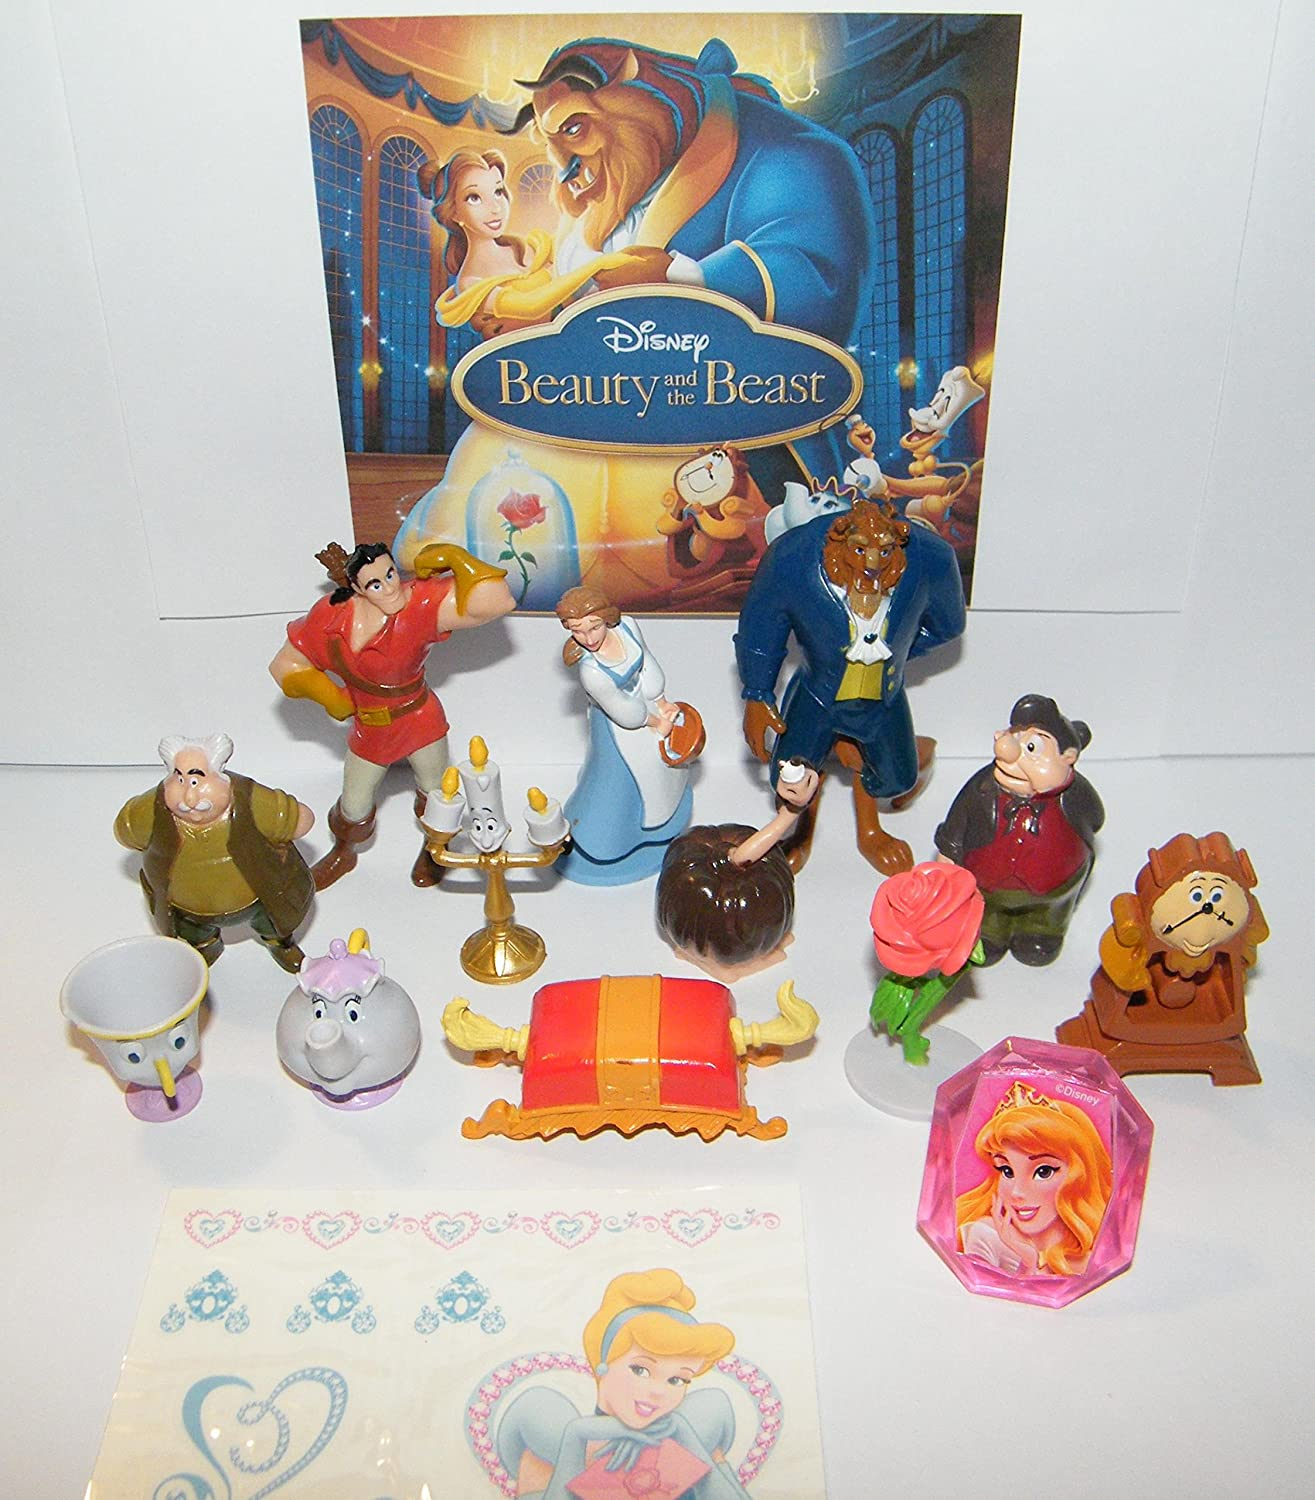 Amazon Com Disney Beauty And The Beast Movie Deluxe Figure Set Of 14 Toy Kit With Figures Tattoo Sheet Toyring Featuring Belle Lumiere Mrs Potts Gaston And Many More Toys Games